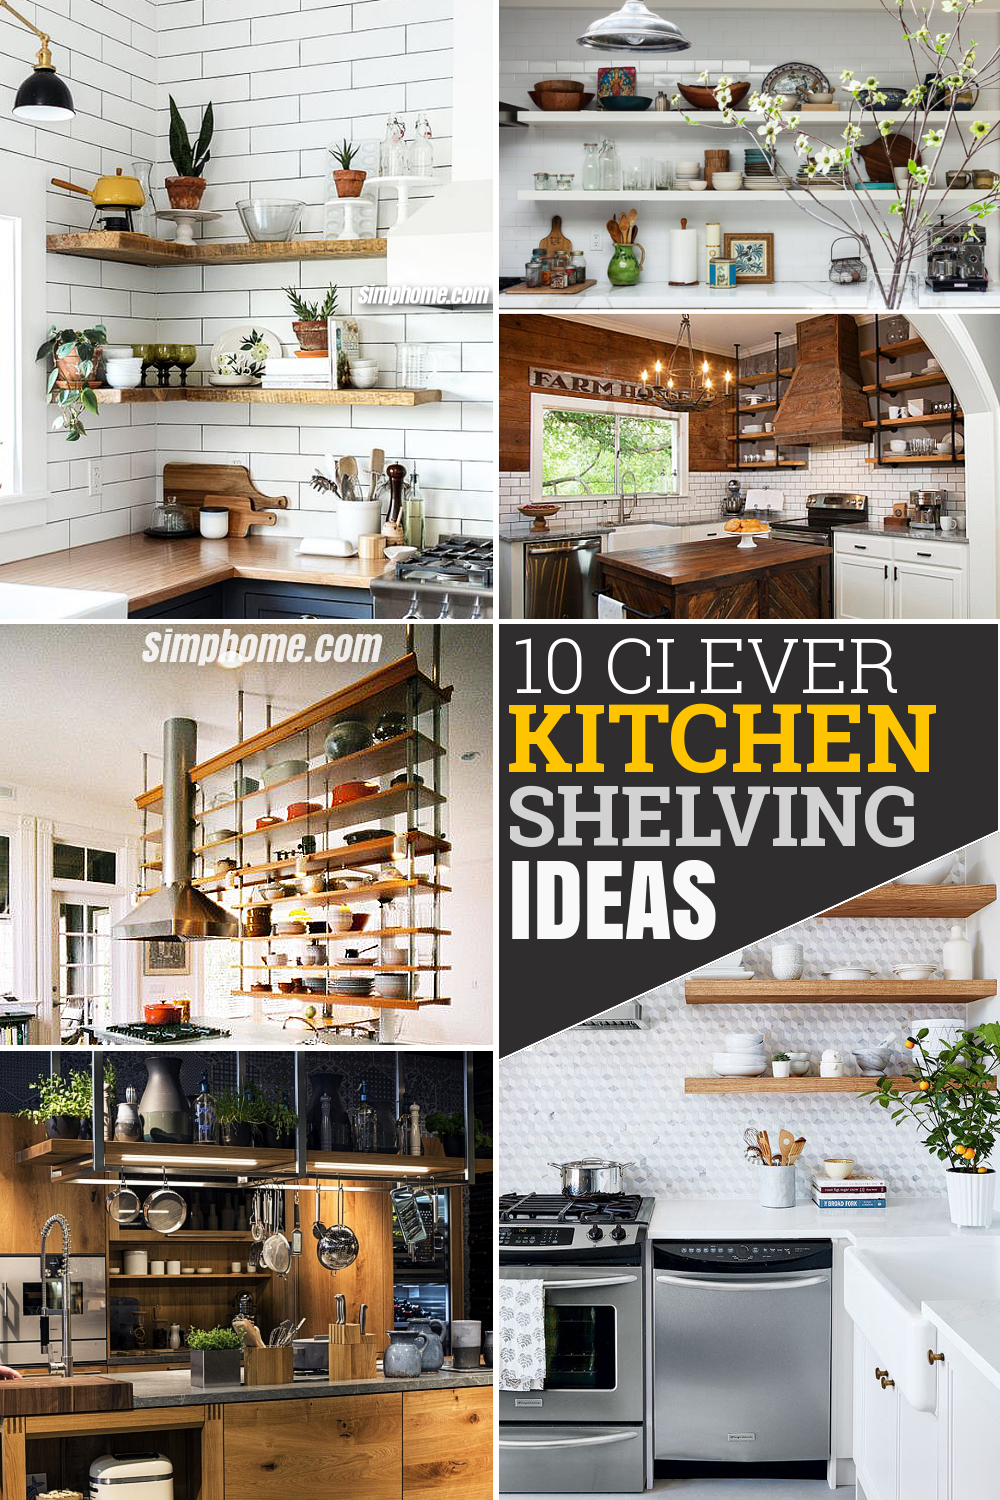 10 Clever Kitchen Shelving Ideas for Living the Kitchen Up via Simphome com Pinterest featured Image